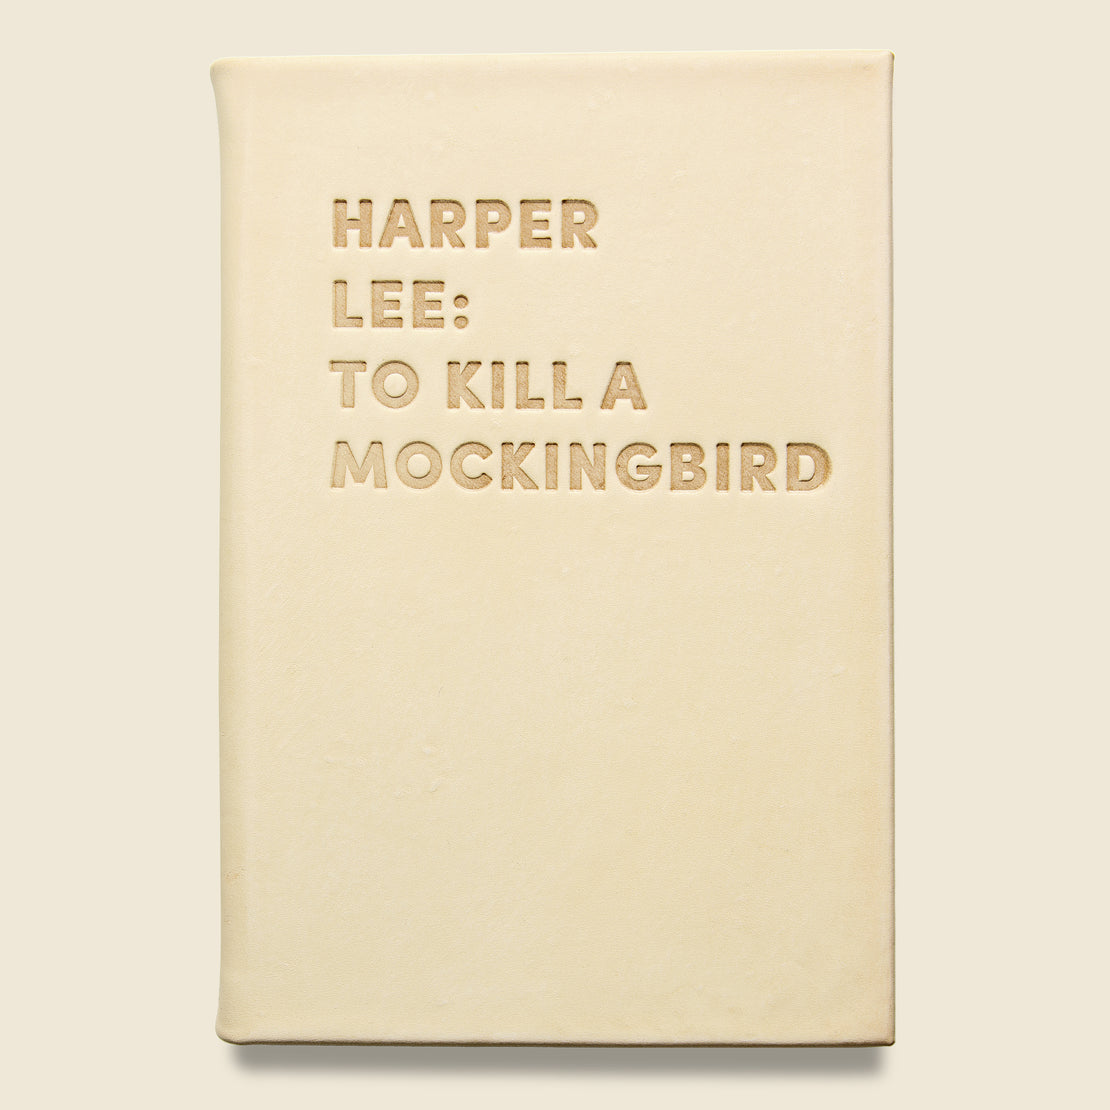 Bookstore To Kill A Mockingbird - Harper Lee